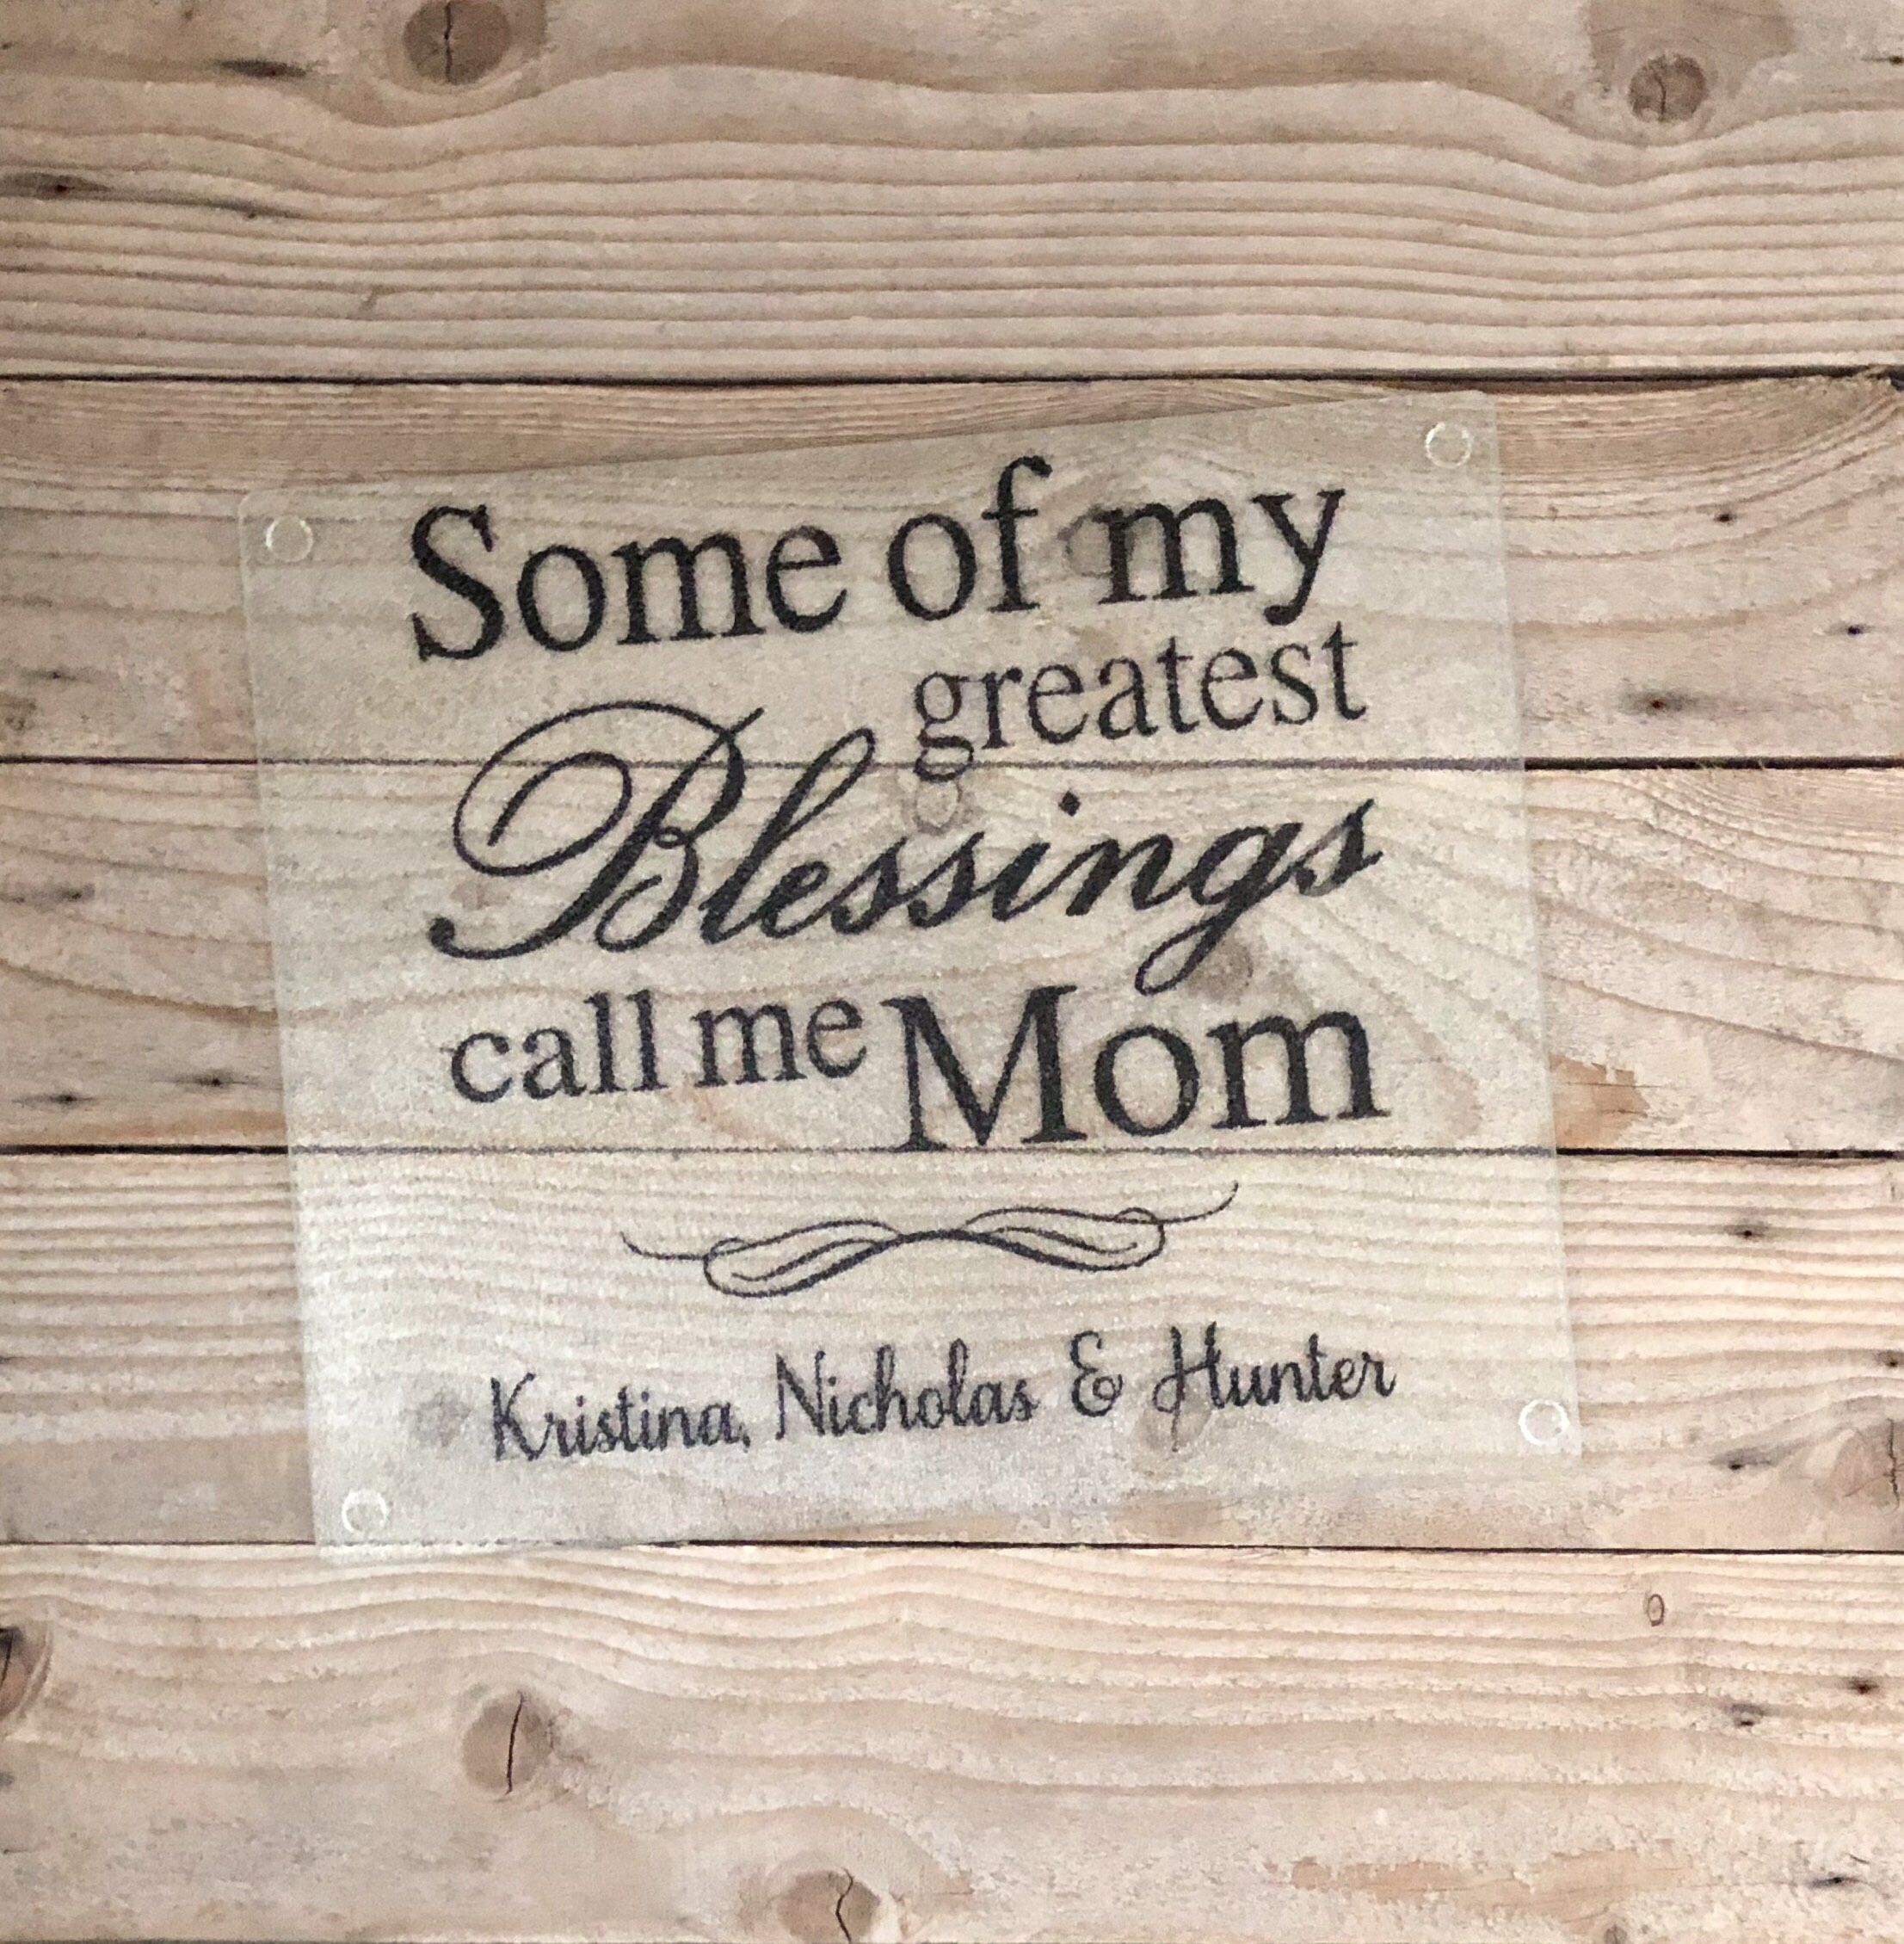 Mothers Day Gift Ideas Gifts for Mom in The Kitchen Grandma is The Boss Mother to Be Gifts Unique Mothers Day Gifts Personalized Cutting Boards for Women Customized Cutting Board